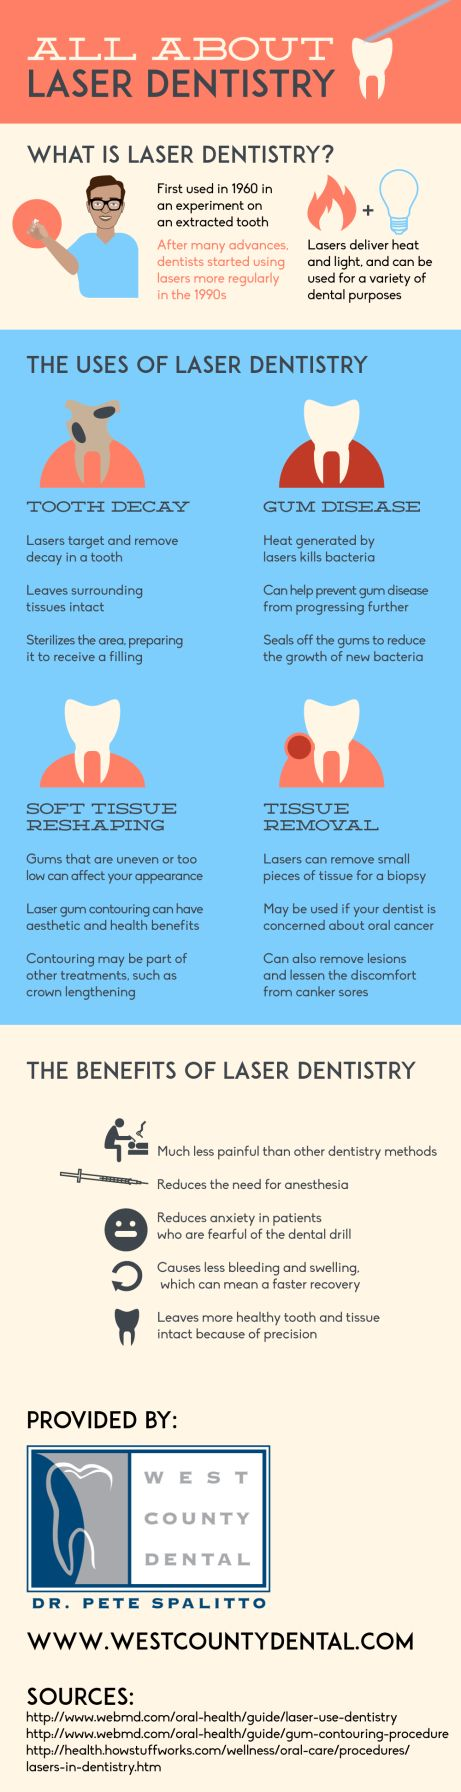 Laser dentistry was first used in 1960 in an experiment on an extracted tooth. Technological advancements resulted in this form of dentistry becoming more popular in the 1990s. Look over this St. Louis oral surgeon infographic for more facts about the history and benefits of laser dentistry.